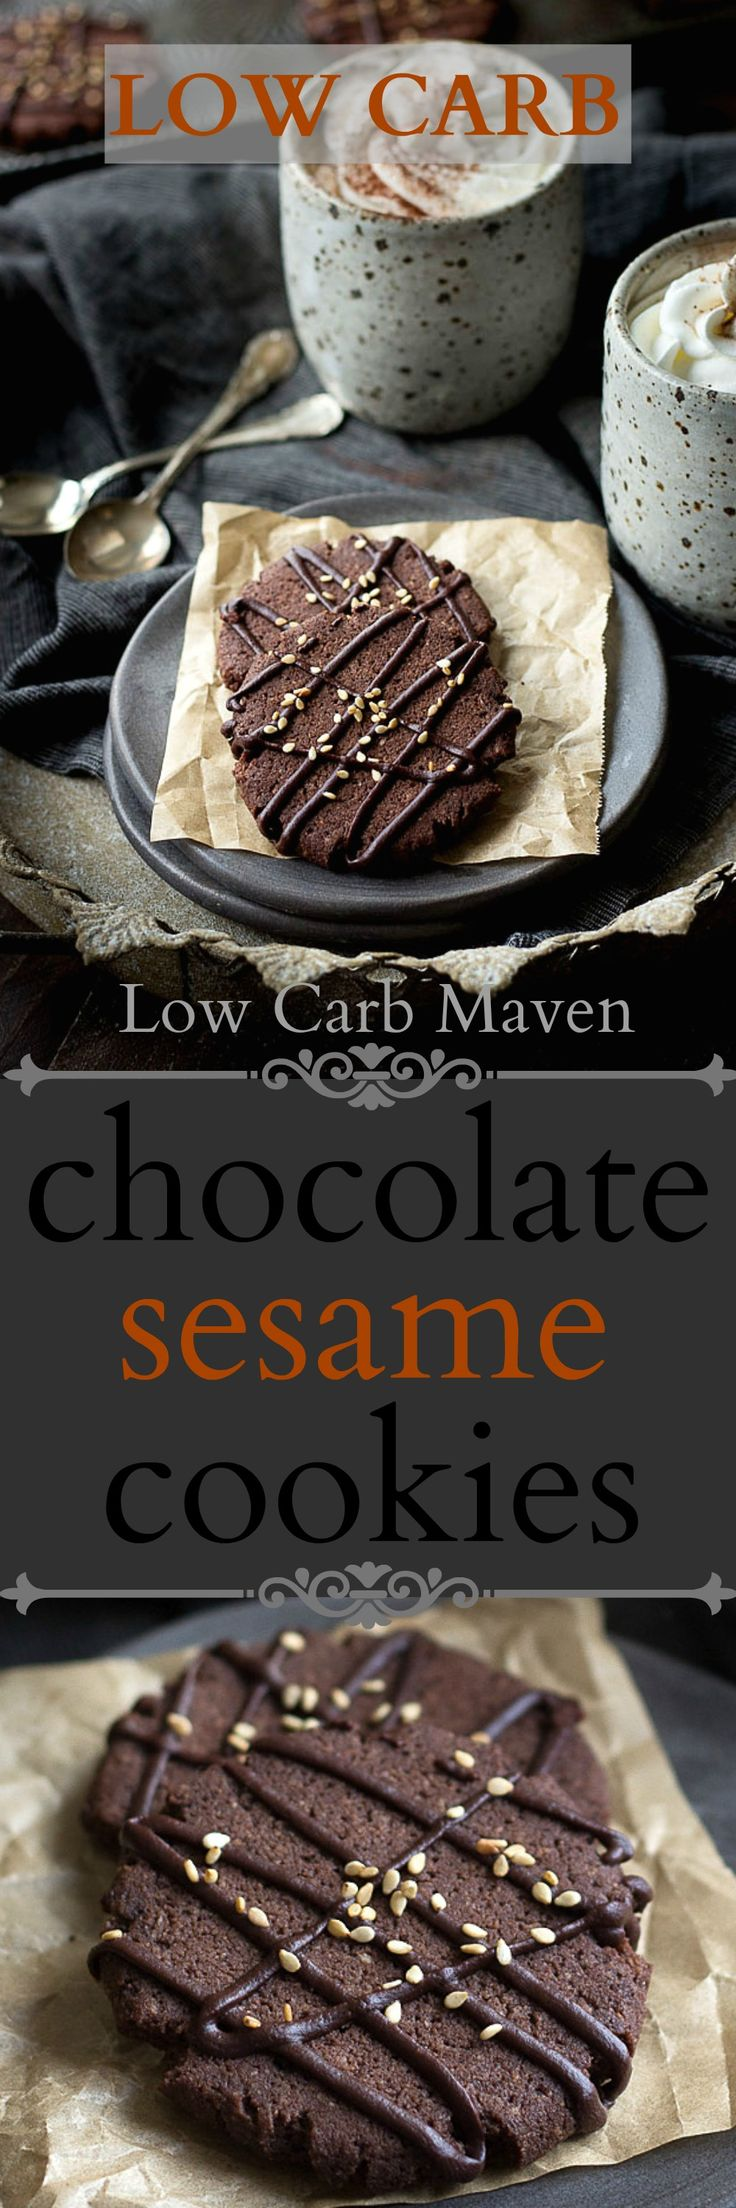 Low carb chocolate sesame cookies have a crispy texture & taste like brownies!